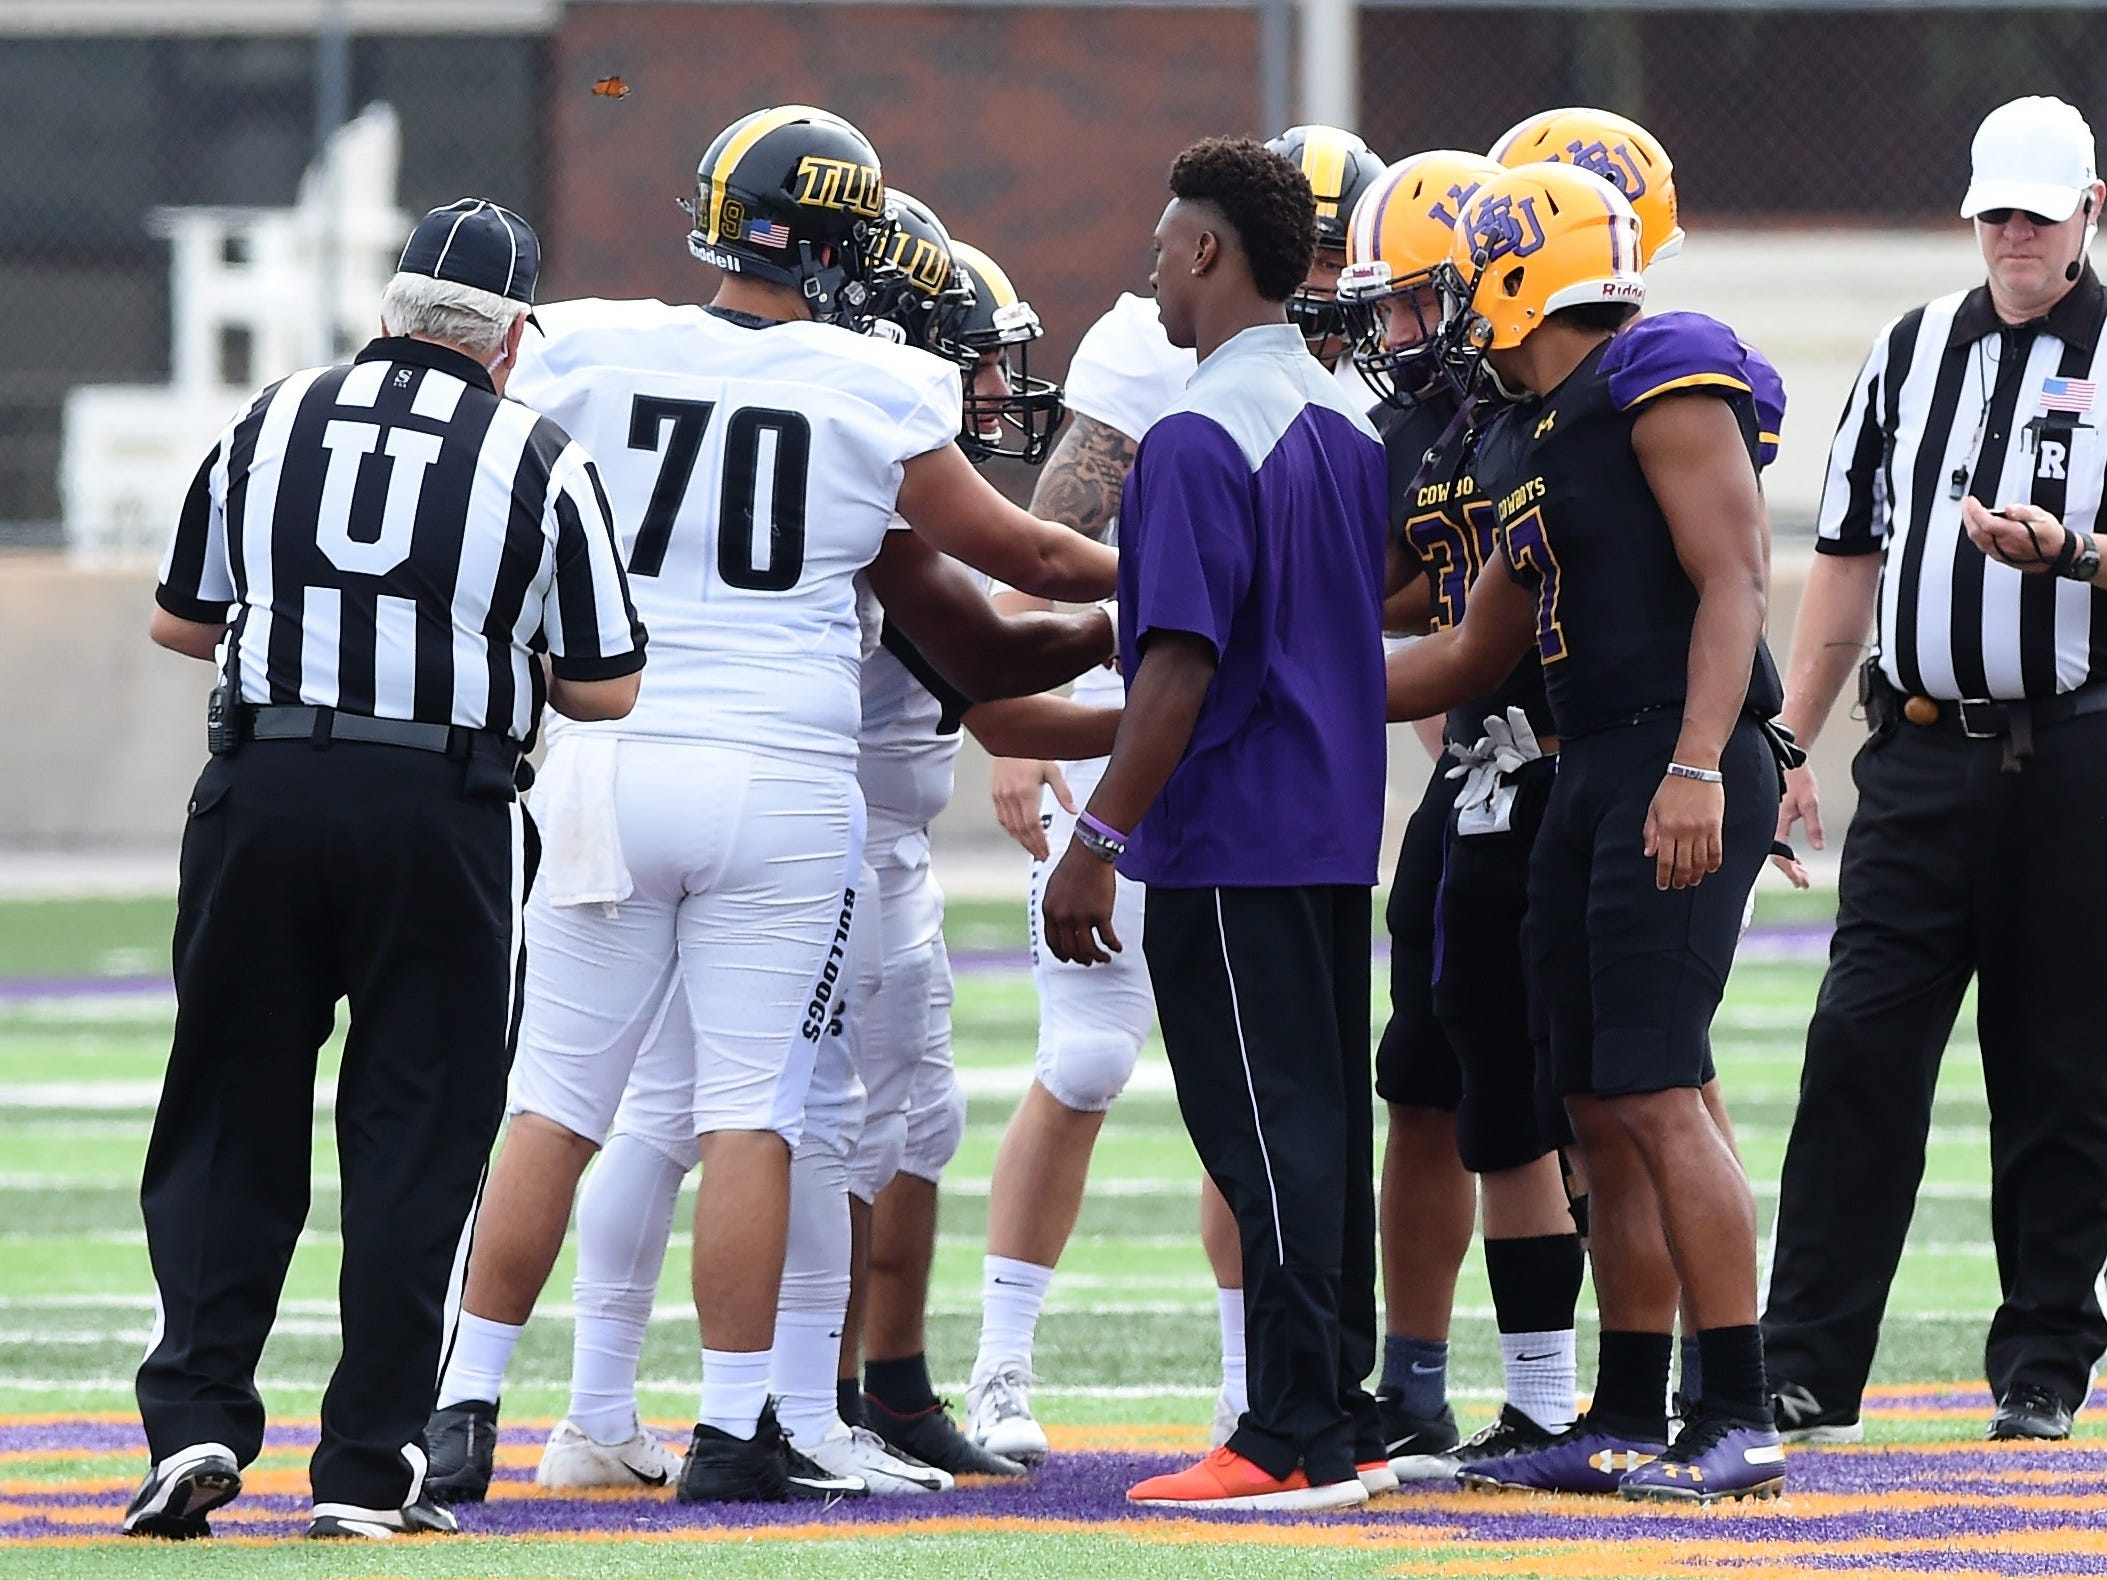 The Hardin-Simmons captains meet at midfield for the coin toss before facing Texas Lutheran at Shelton Stadium on Saturday, Oct. 20, 2018.